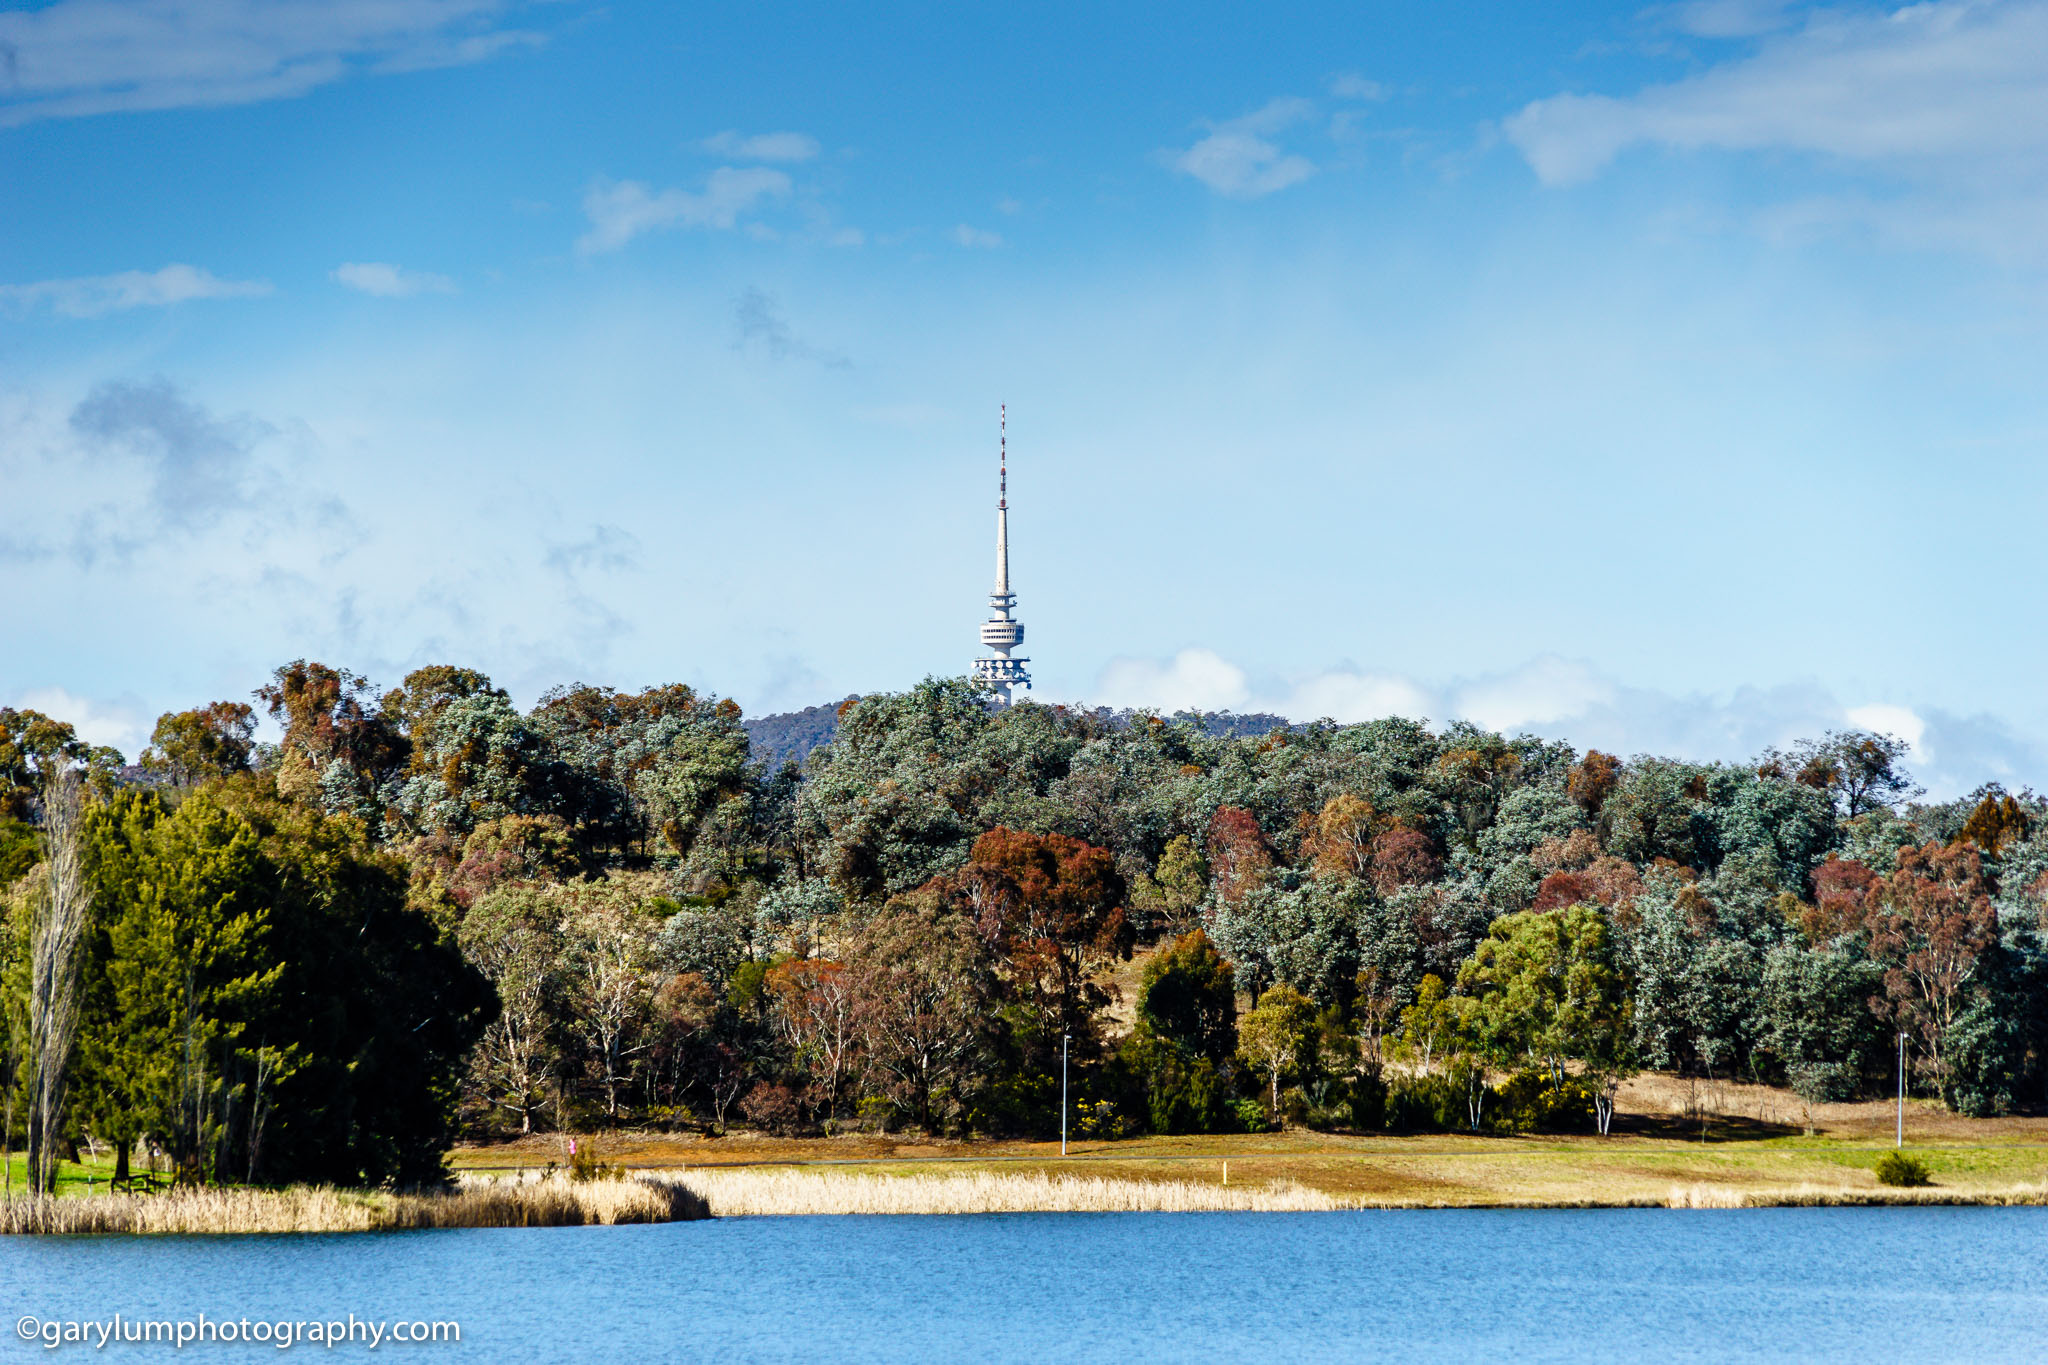 Lake Ginninderra and Telstra Tower